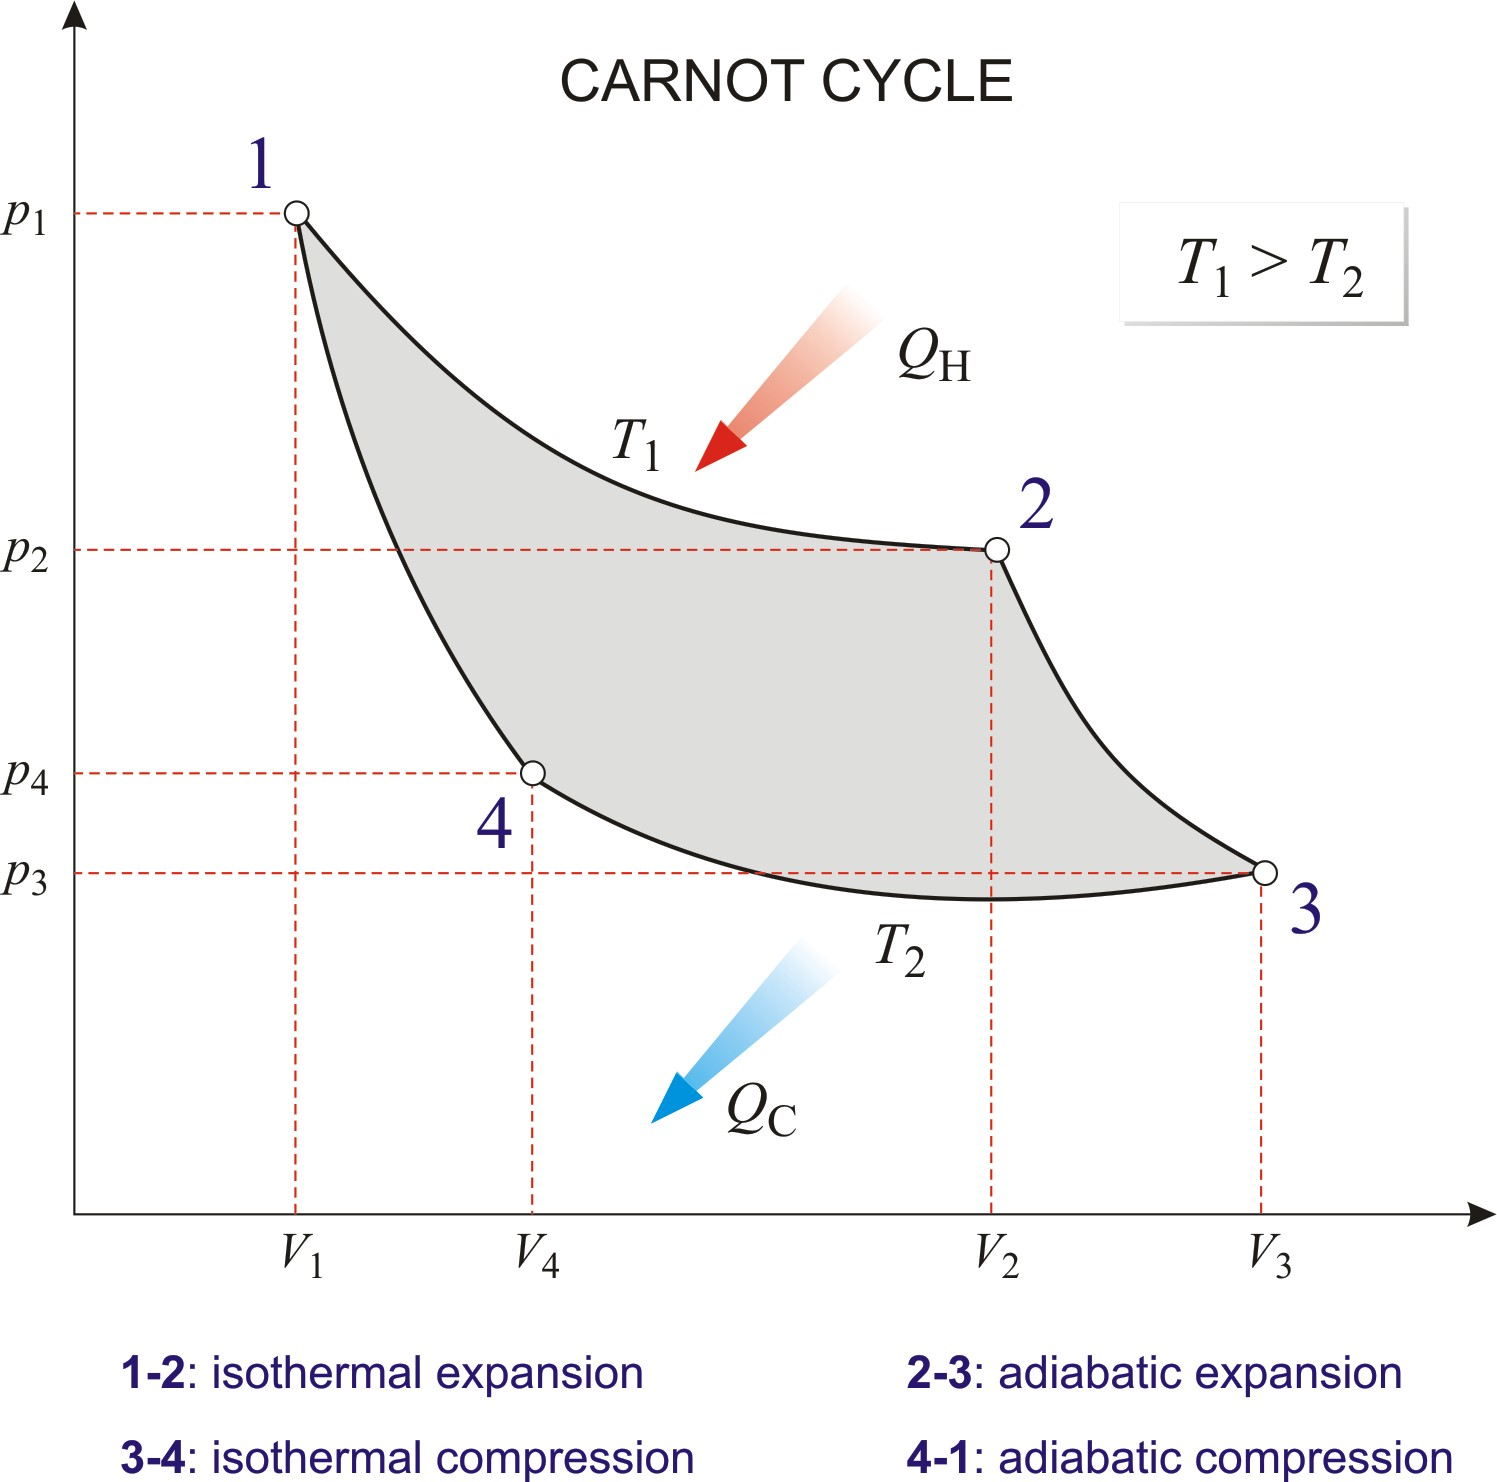 Carnot engine pv diagram carnot cycle chemistry dictionary carnot engine pv diagram carnot cycle chemistry dictionary glossary of carnot engine pv diagram carnot ccuart Gallery